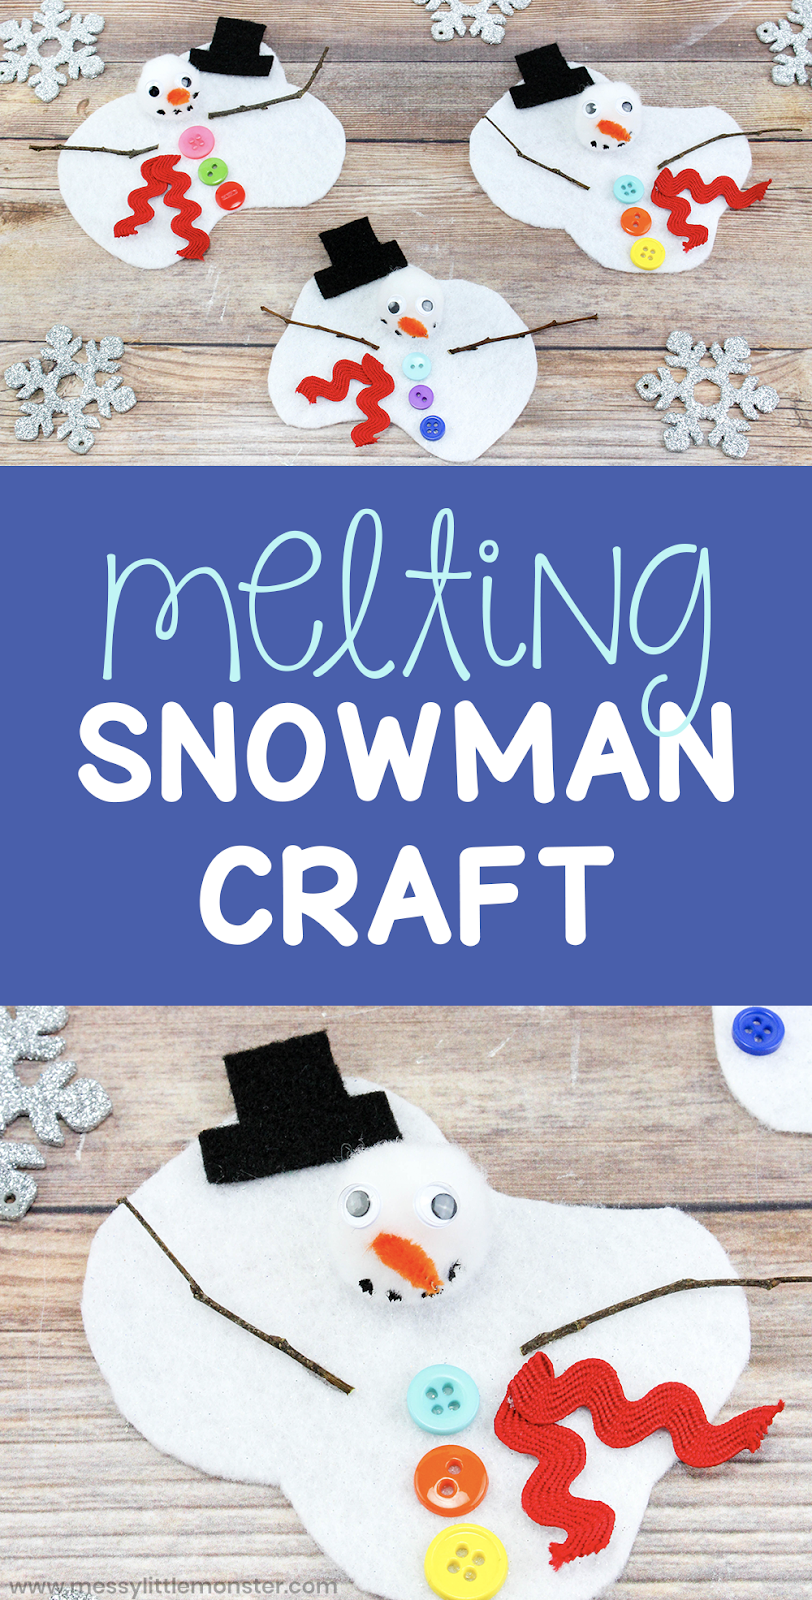 You will love this easy melting snowman craft for kids. Make a melted snowman craft as part of a fun winter project for kids. Toddlers and preschoolers will love it!